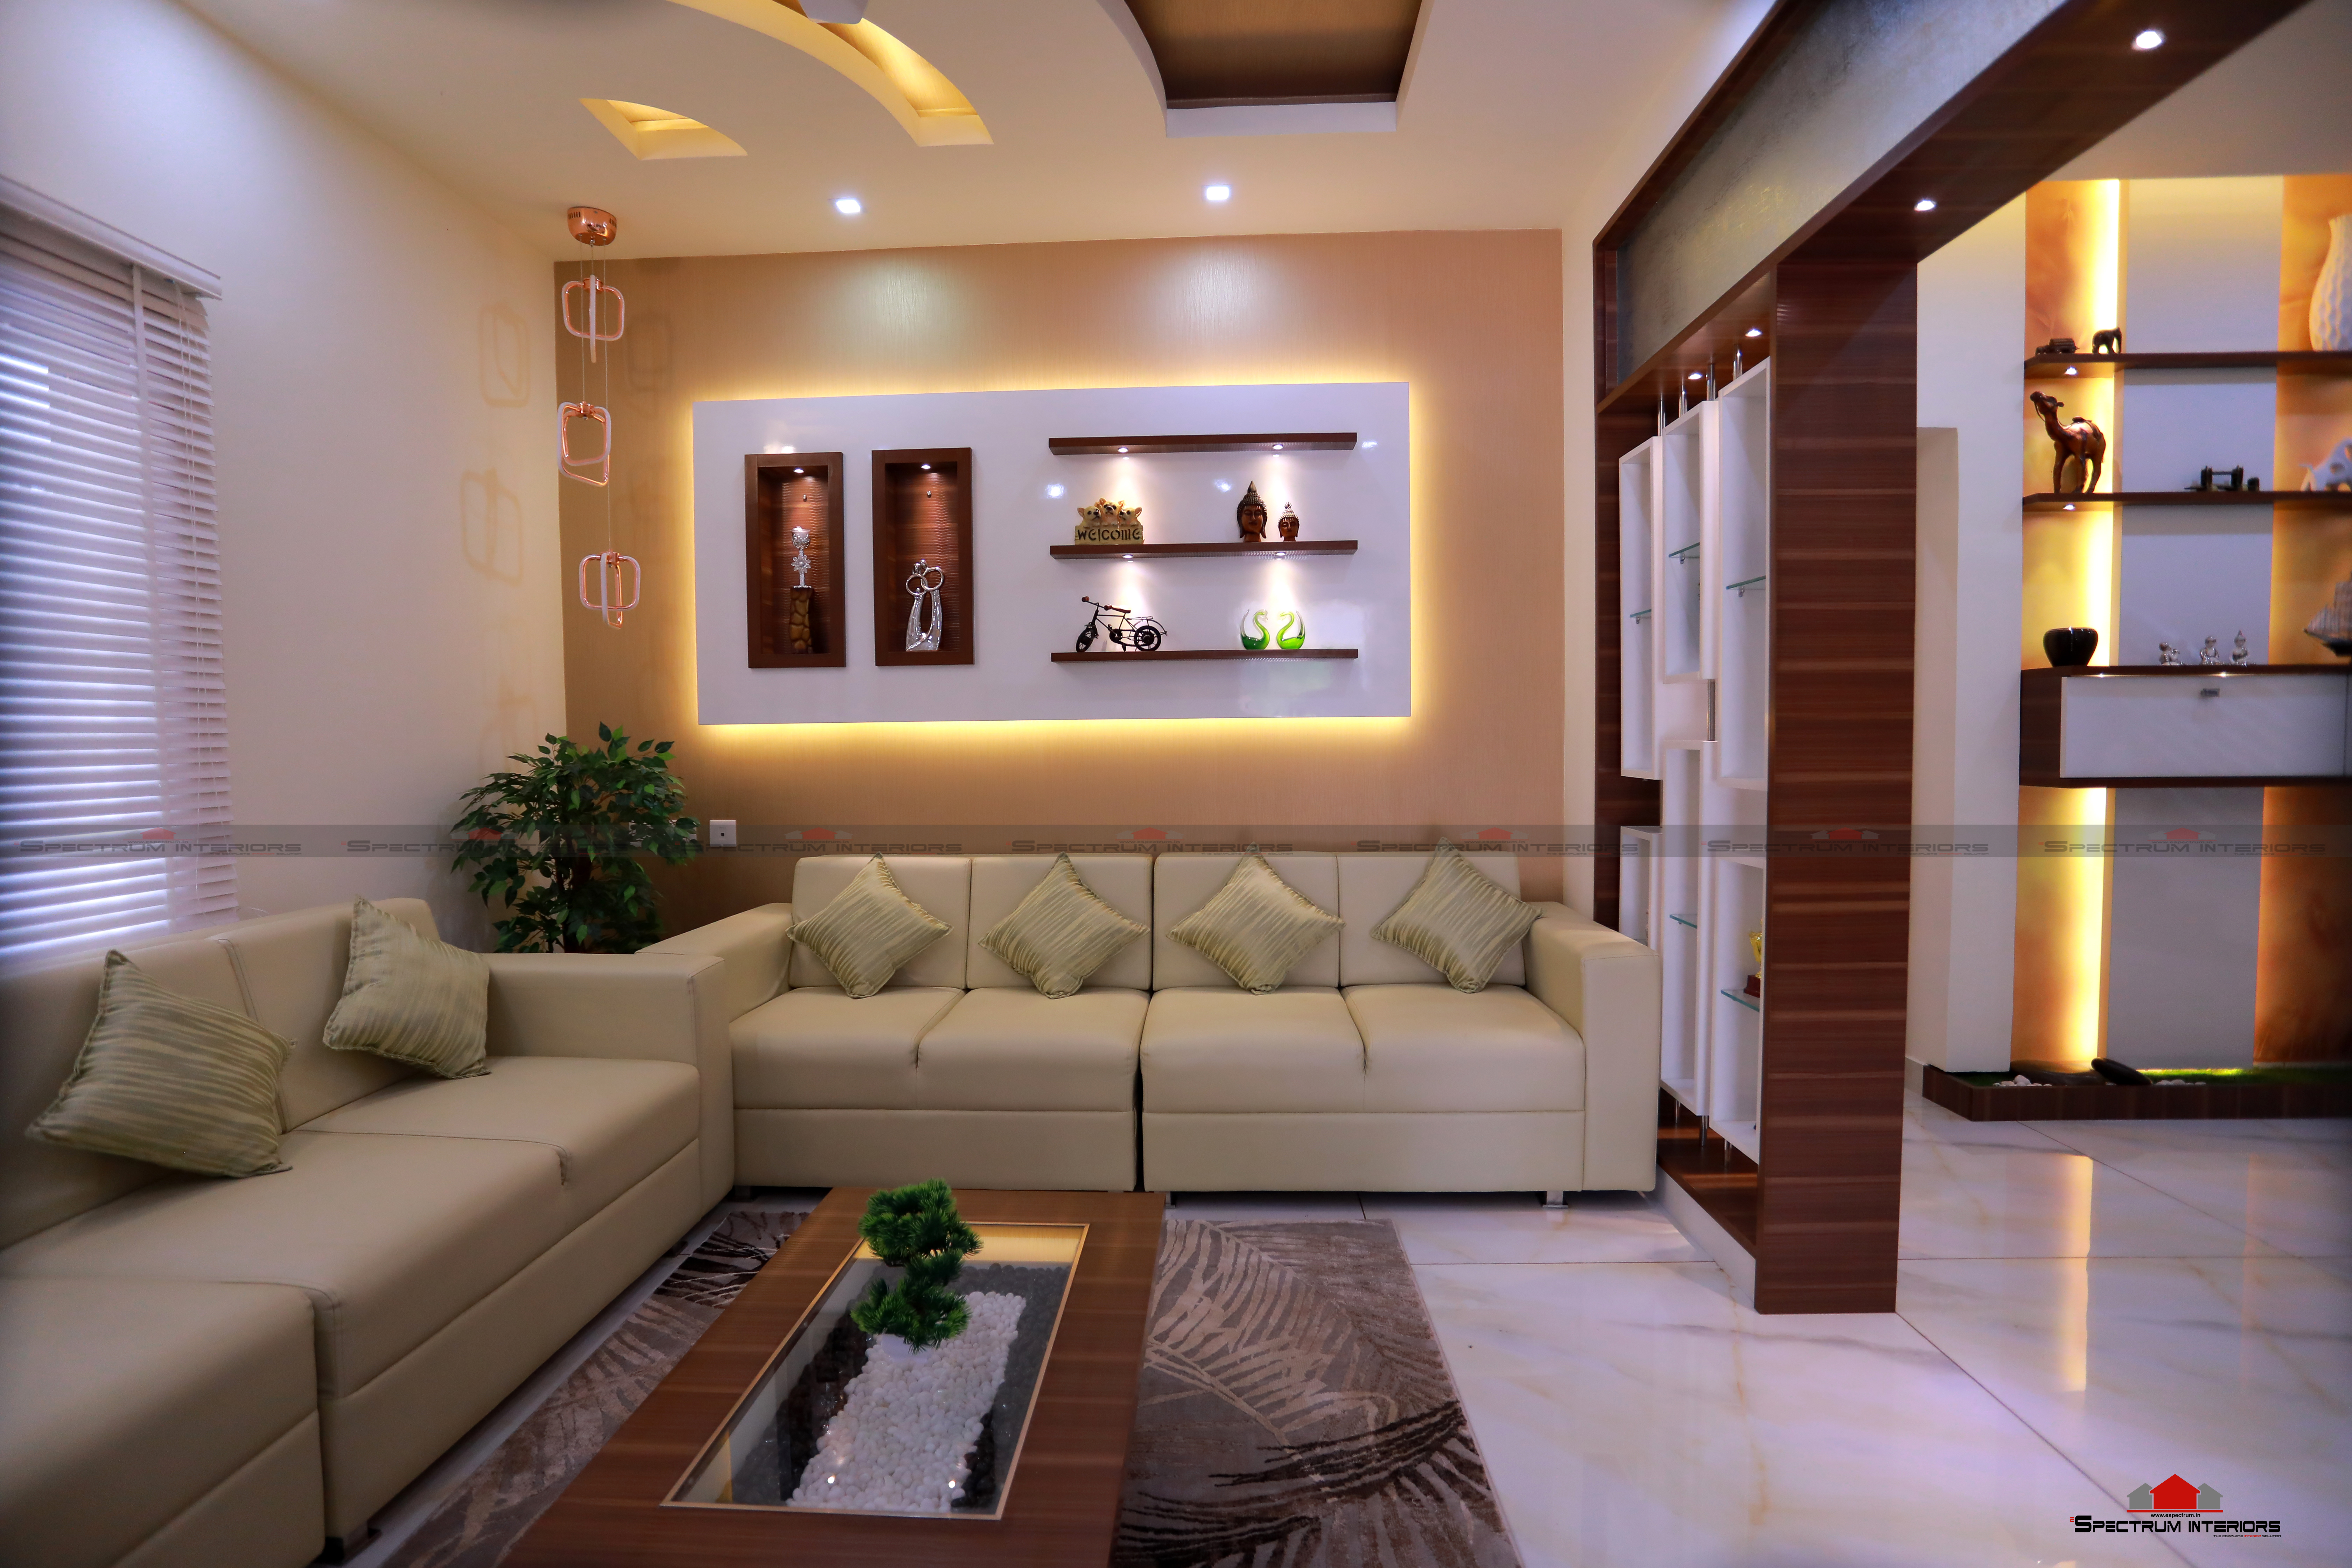 E Spectrum Interiors - Best Interior Designers in Kerala ...